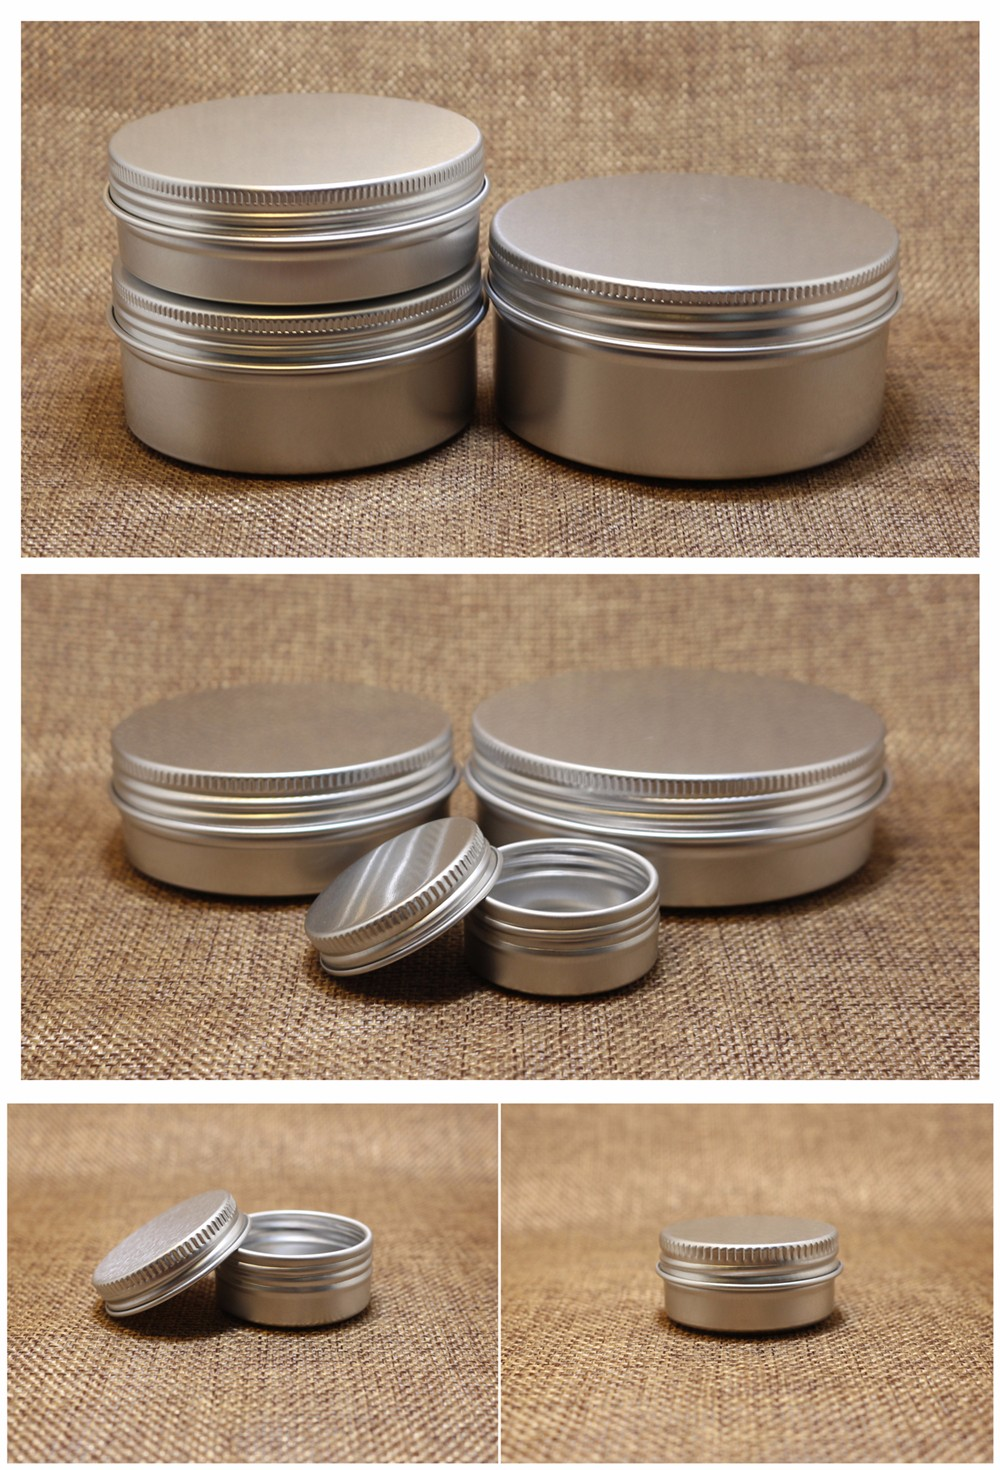 10g 5g 20g 25g 30g Printed Lip Balm Tin Containers wholesale AJ-20Z